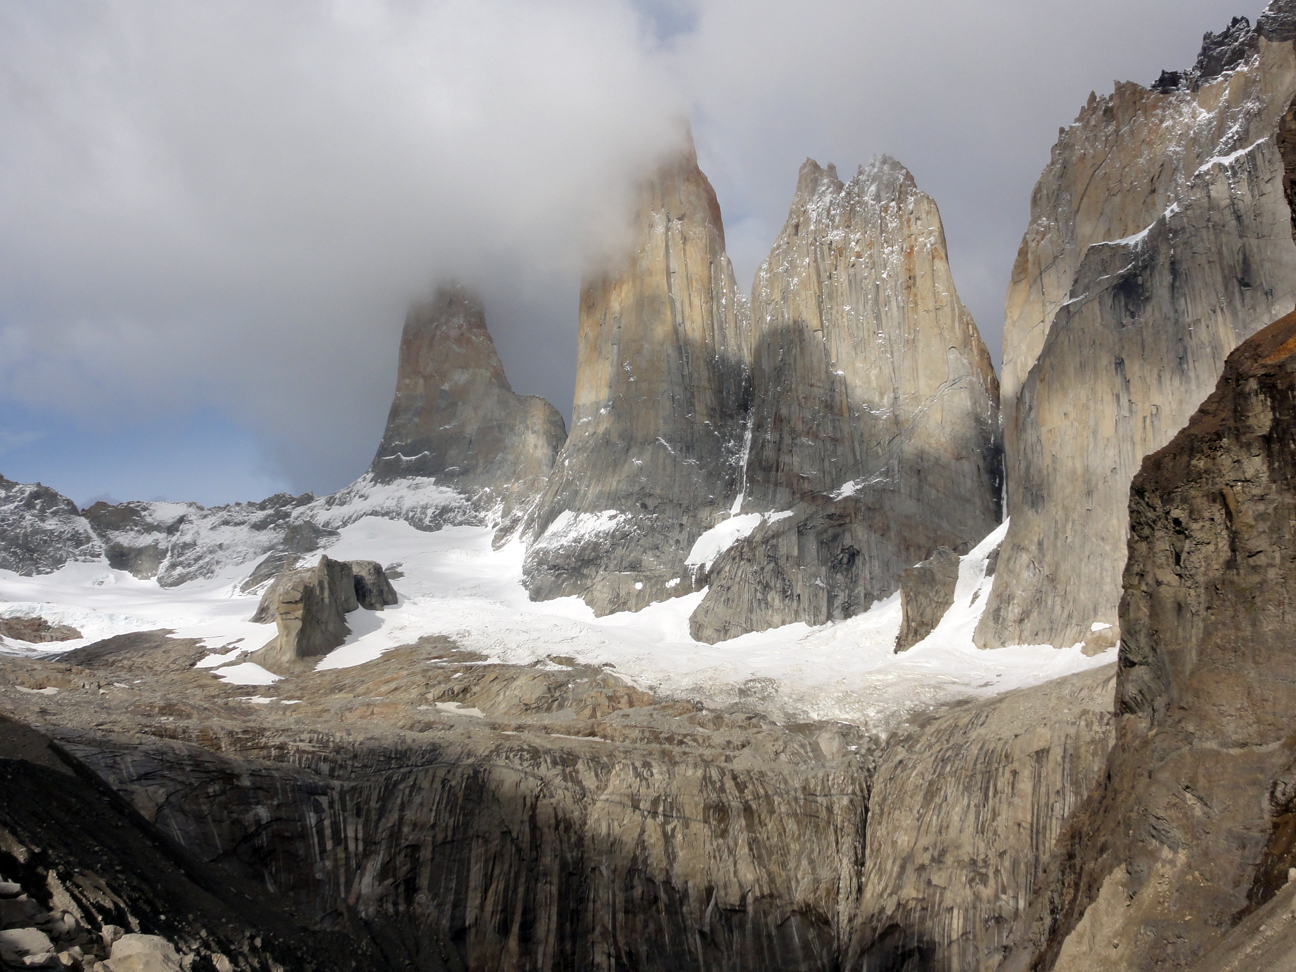 Hiking Torres del Paine in Patagonia, Chile